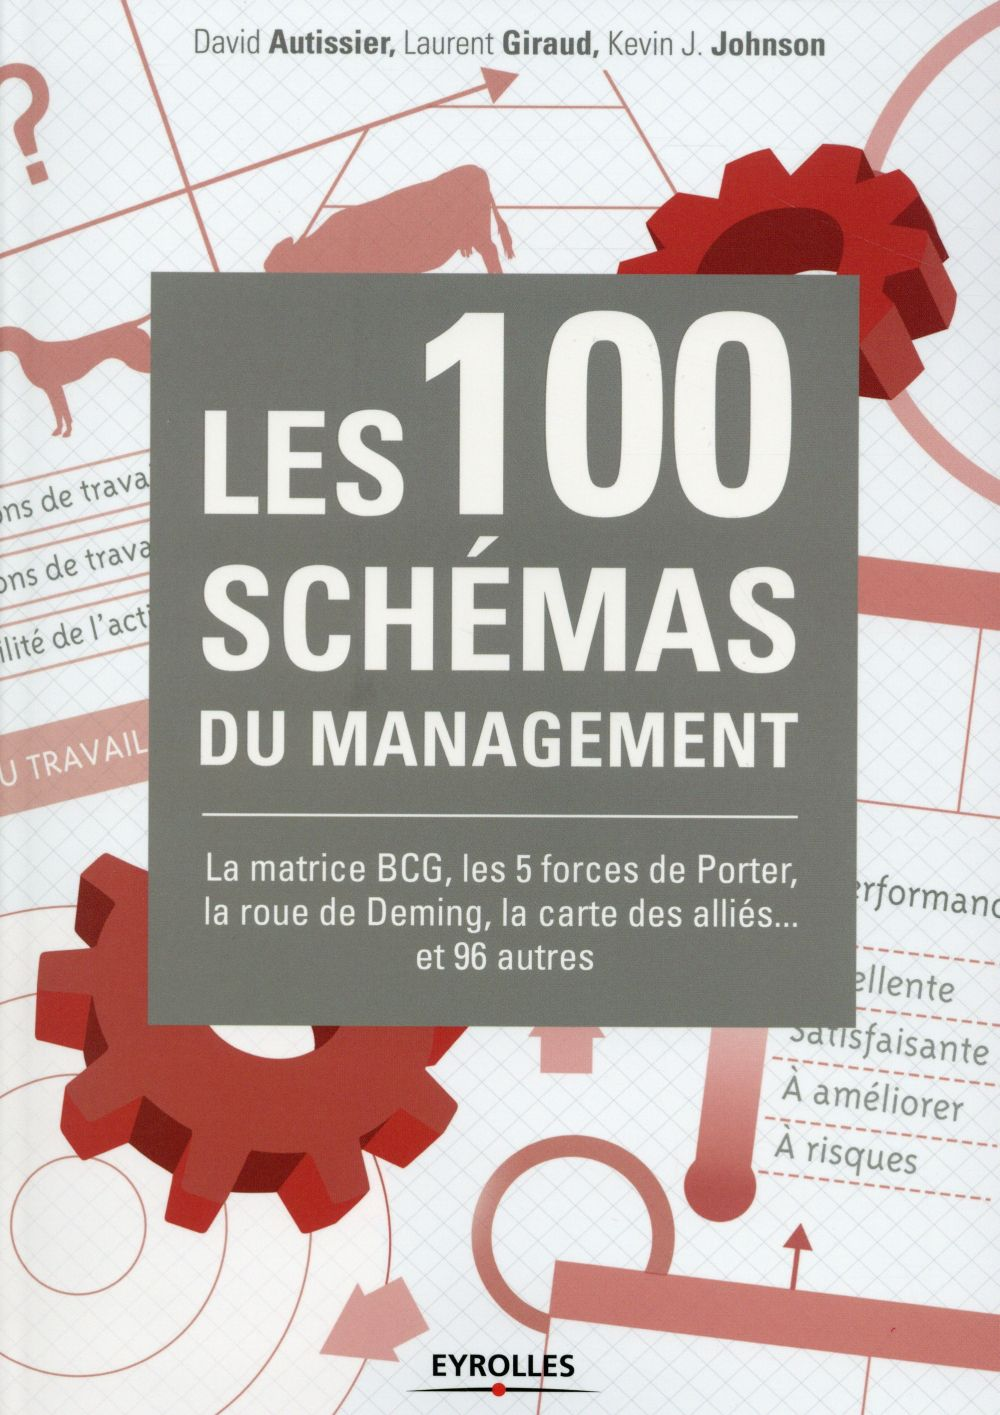 LES 100 SCHEMAS DU MANAGEMENT  -  LA MATRICE BCG, LES 5 FORCES DE PORTER, LA ROUE DE DEMING, LA CARTE DES ALLIES... ET 96 AUTERS  GIRAUD, LAURENT